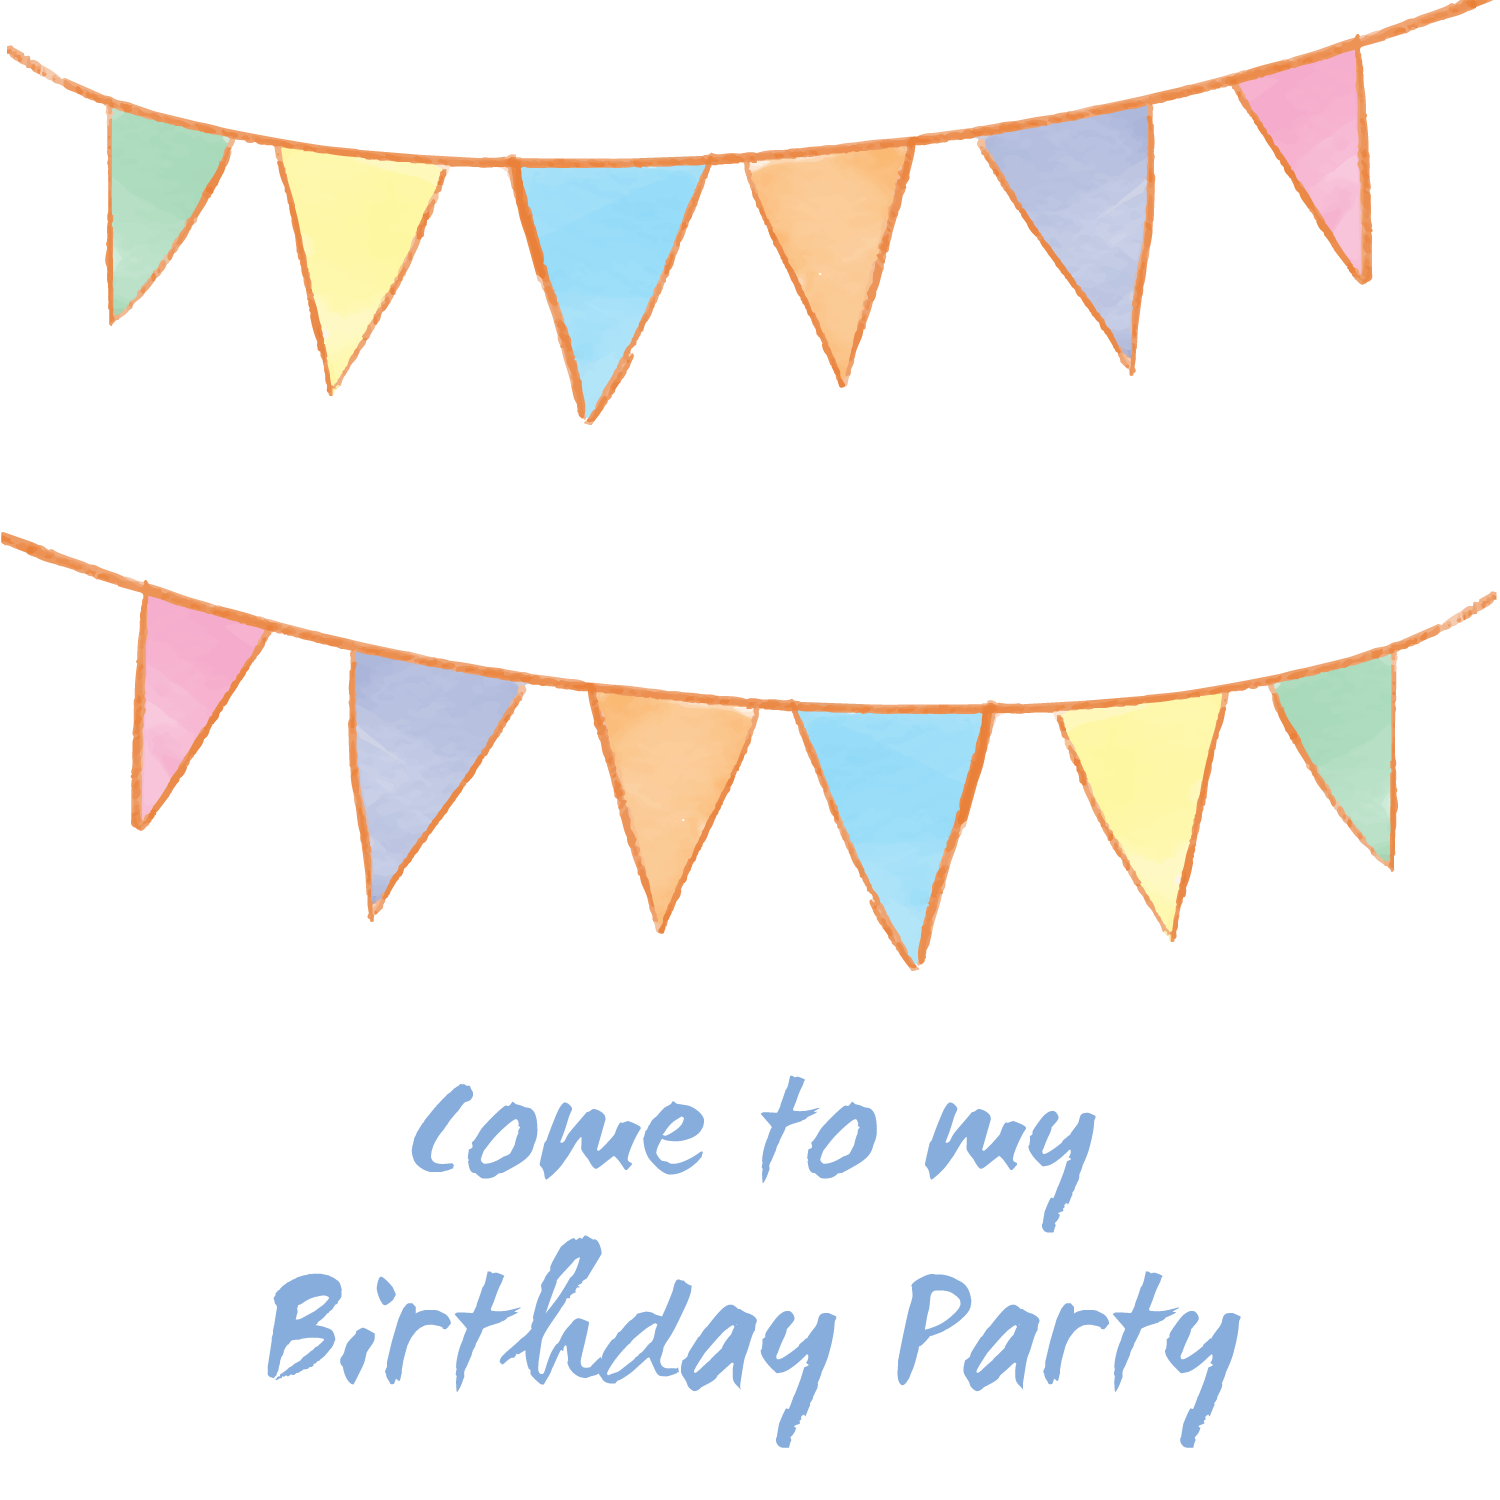 Party decoration png. Birthday clip art material